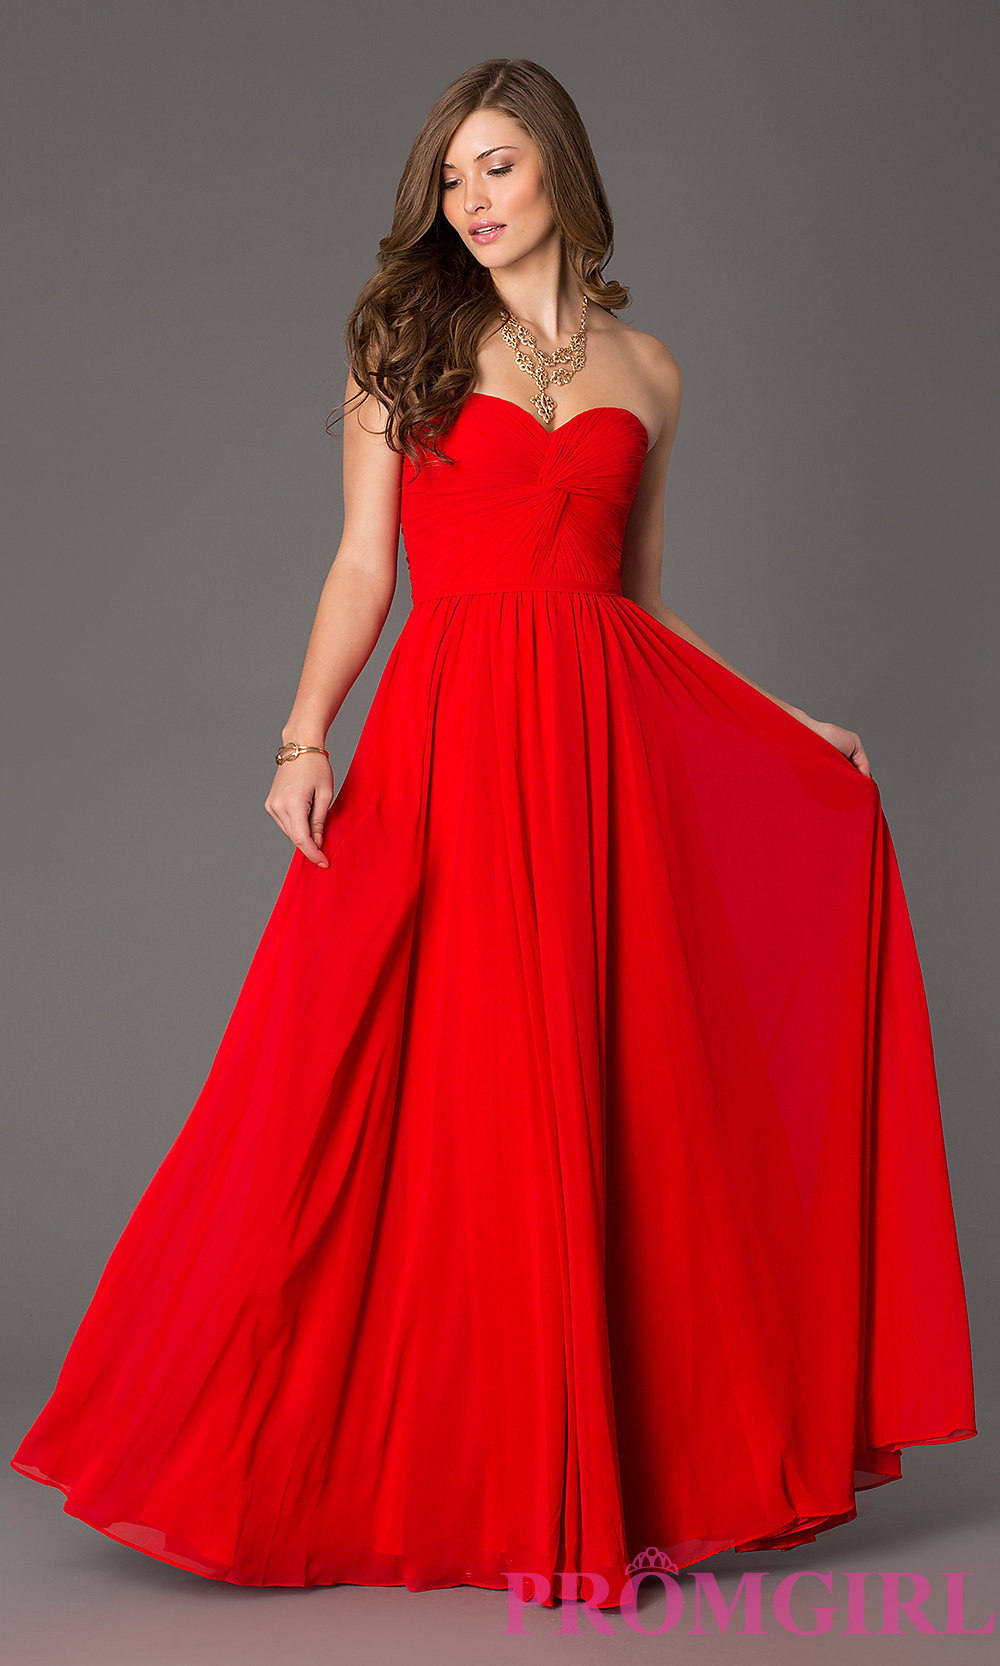 Pretty red dress // www.brokeandchic.com